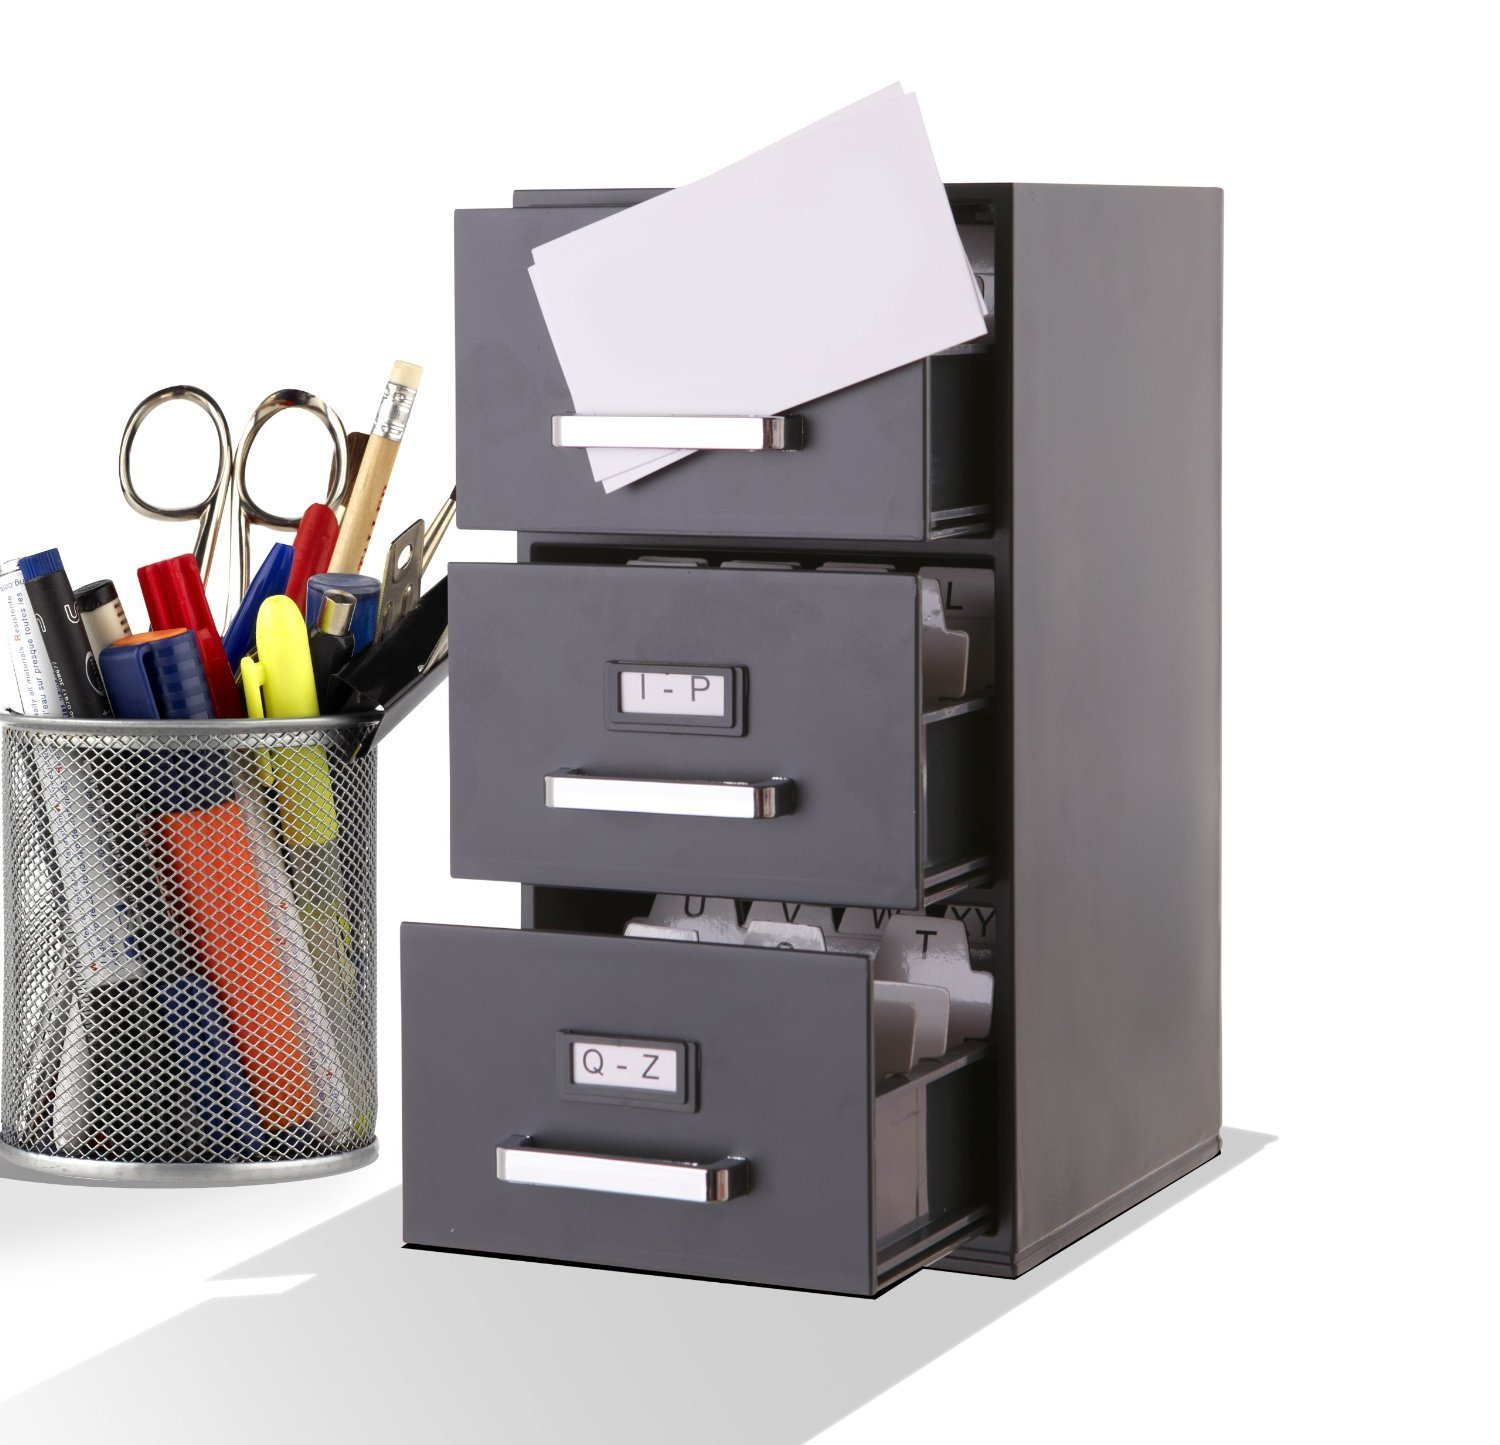 amazoncom mini file cabinet business card holder 3drawer office products - Small File Cabinet